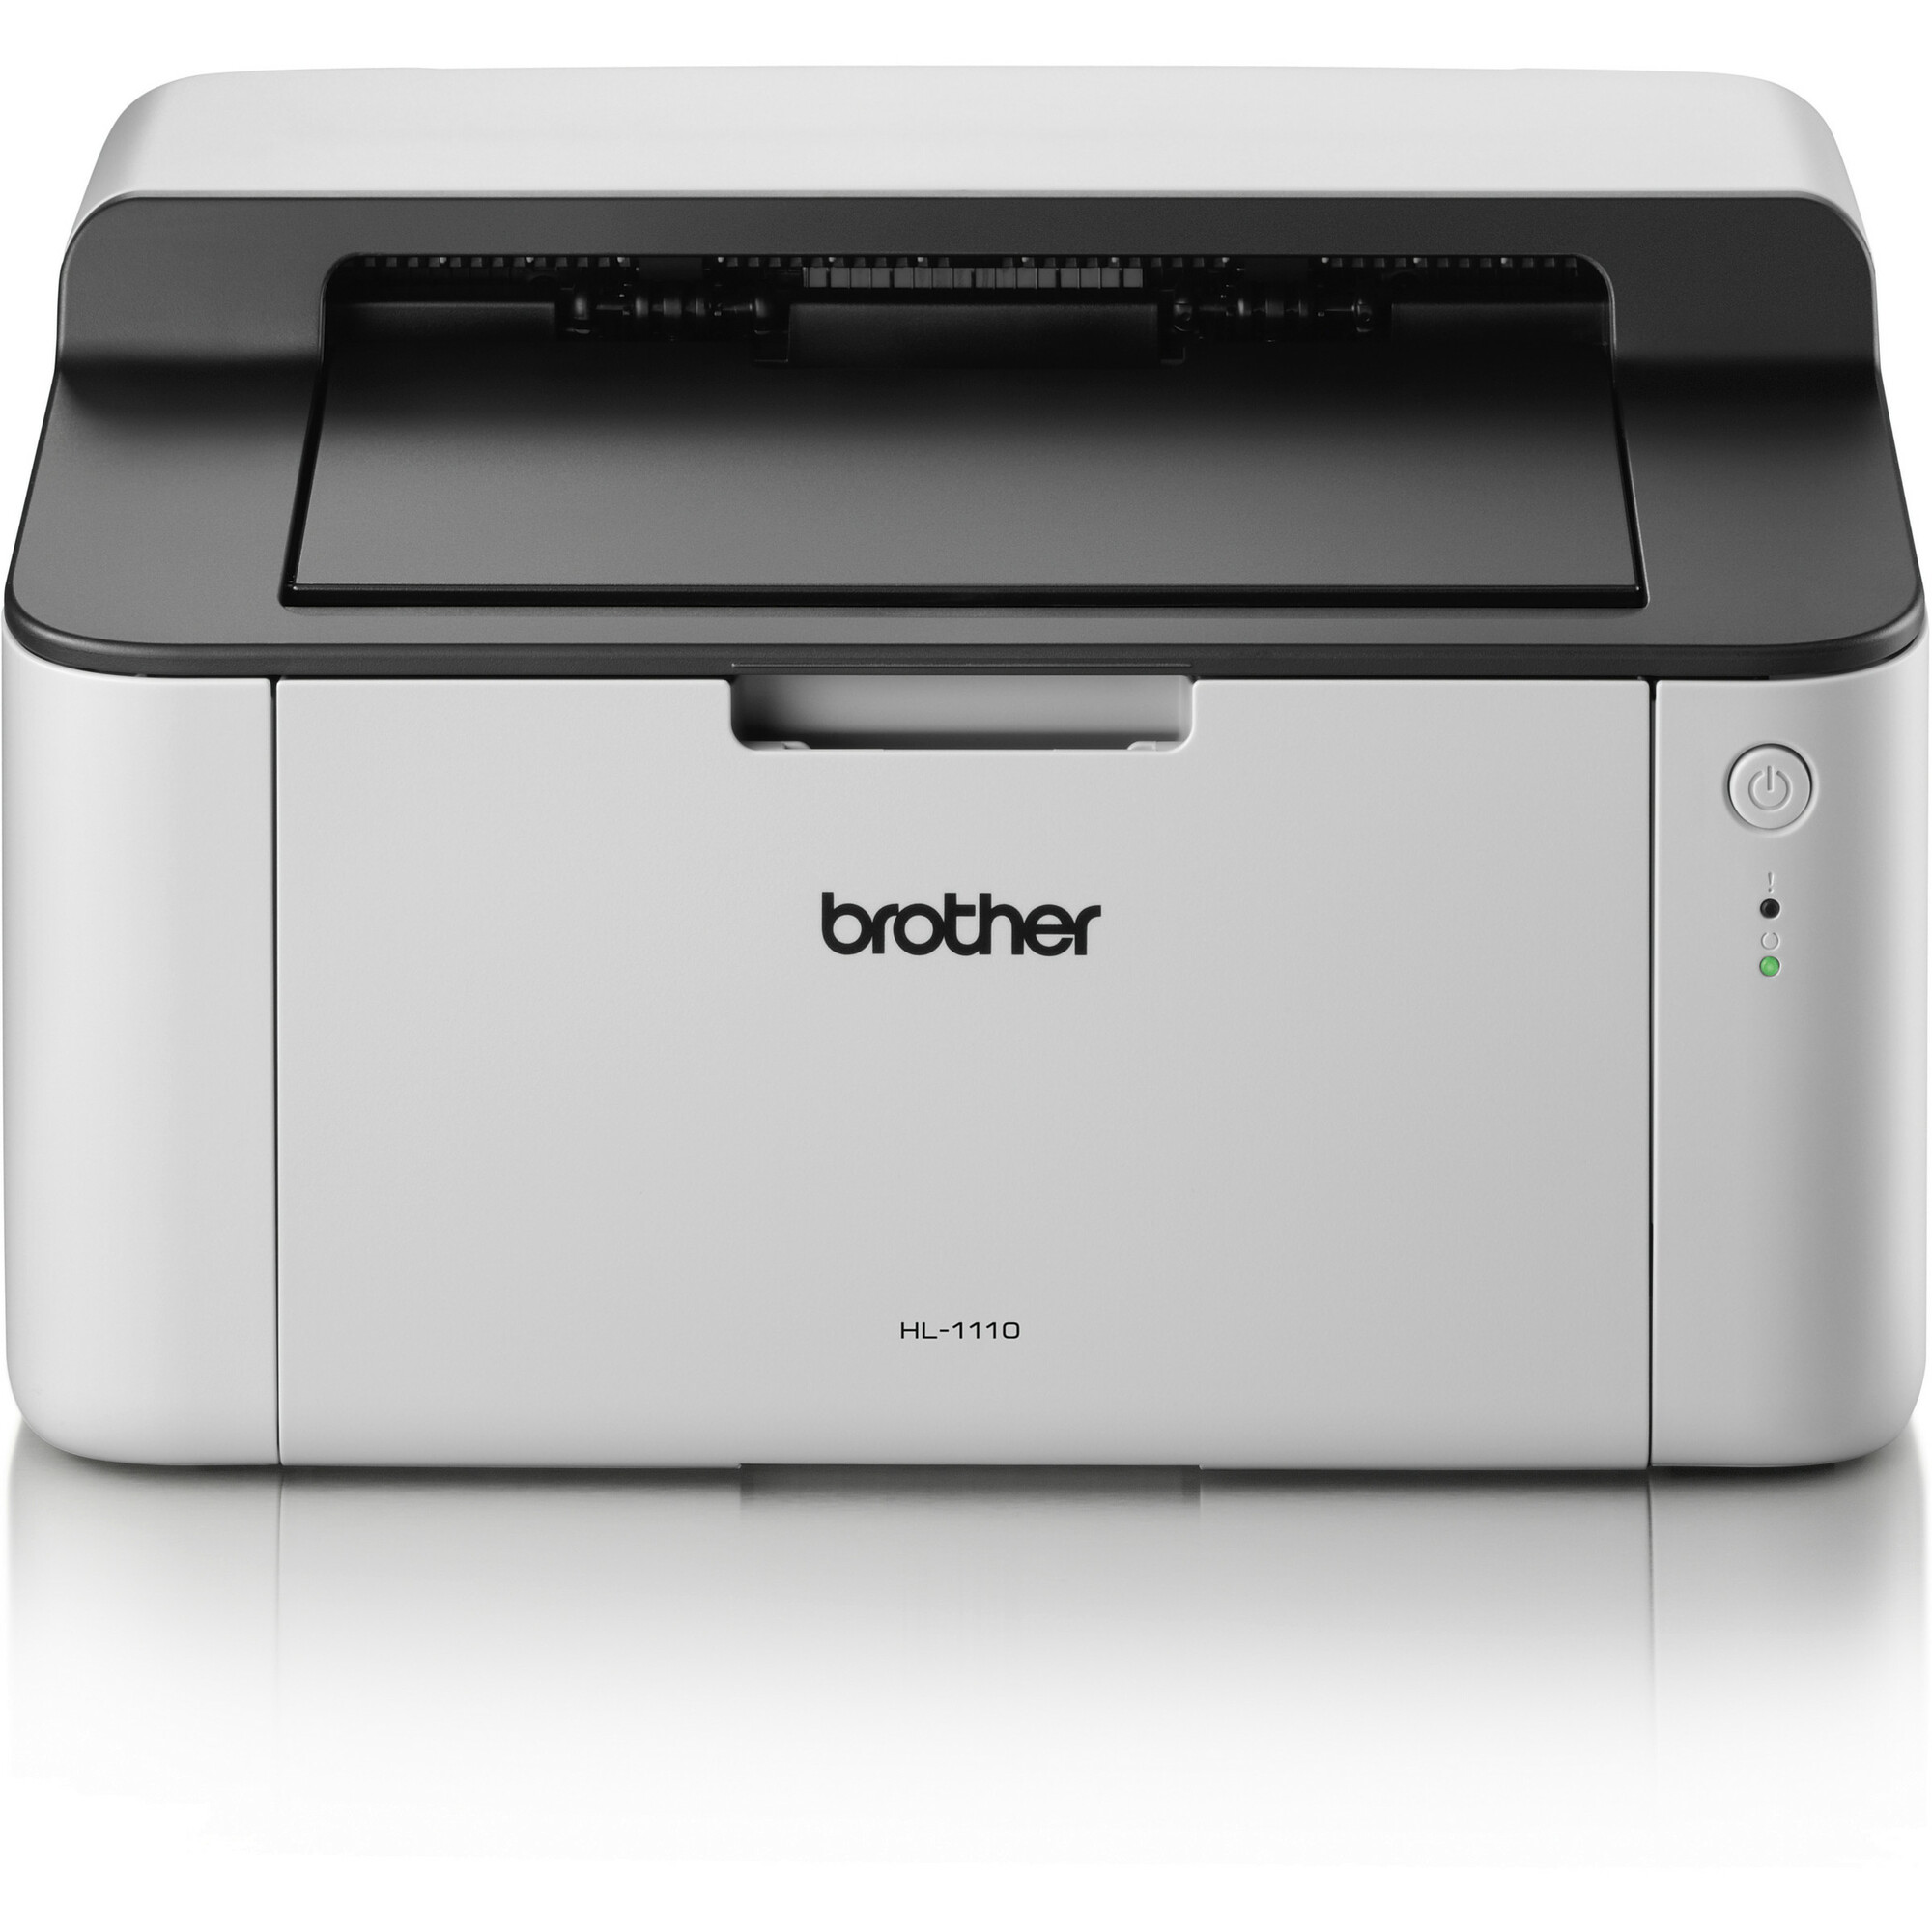 Brother HL-1110 Laser Printer - Monochrome